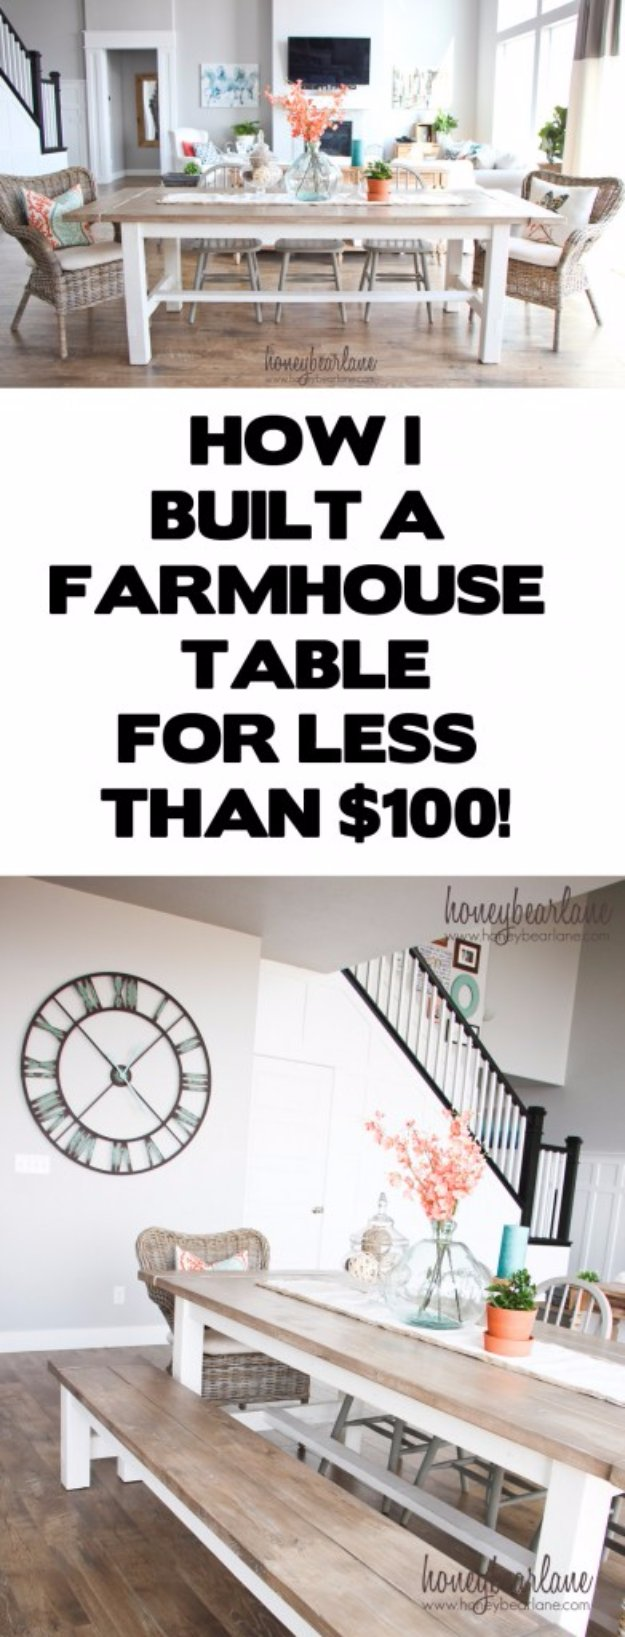 36 diy dining room decor ideas How to build a farmhouse